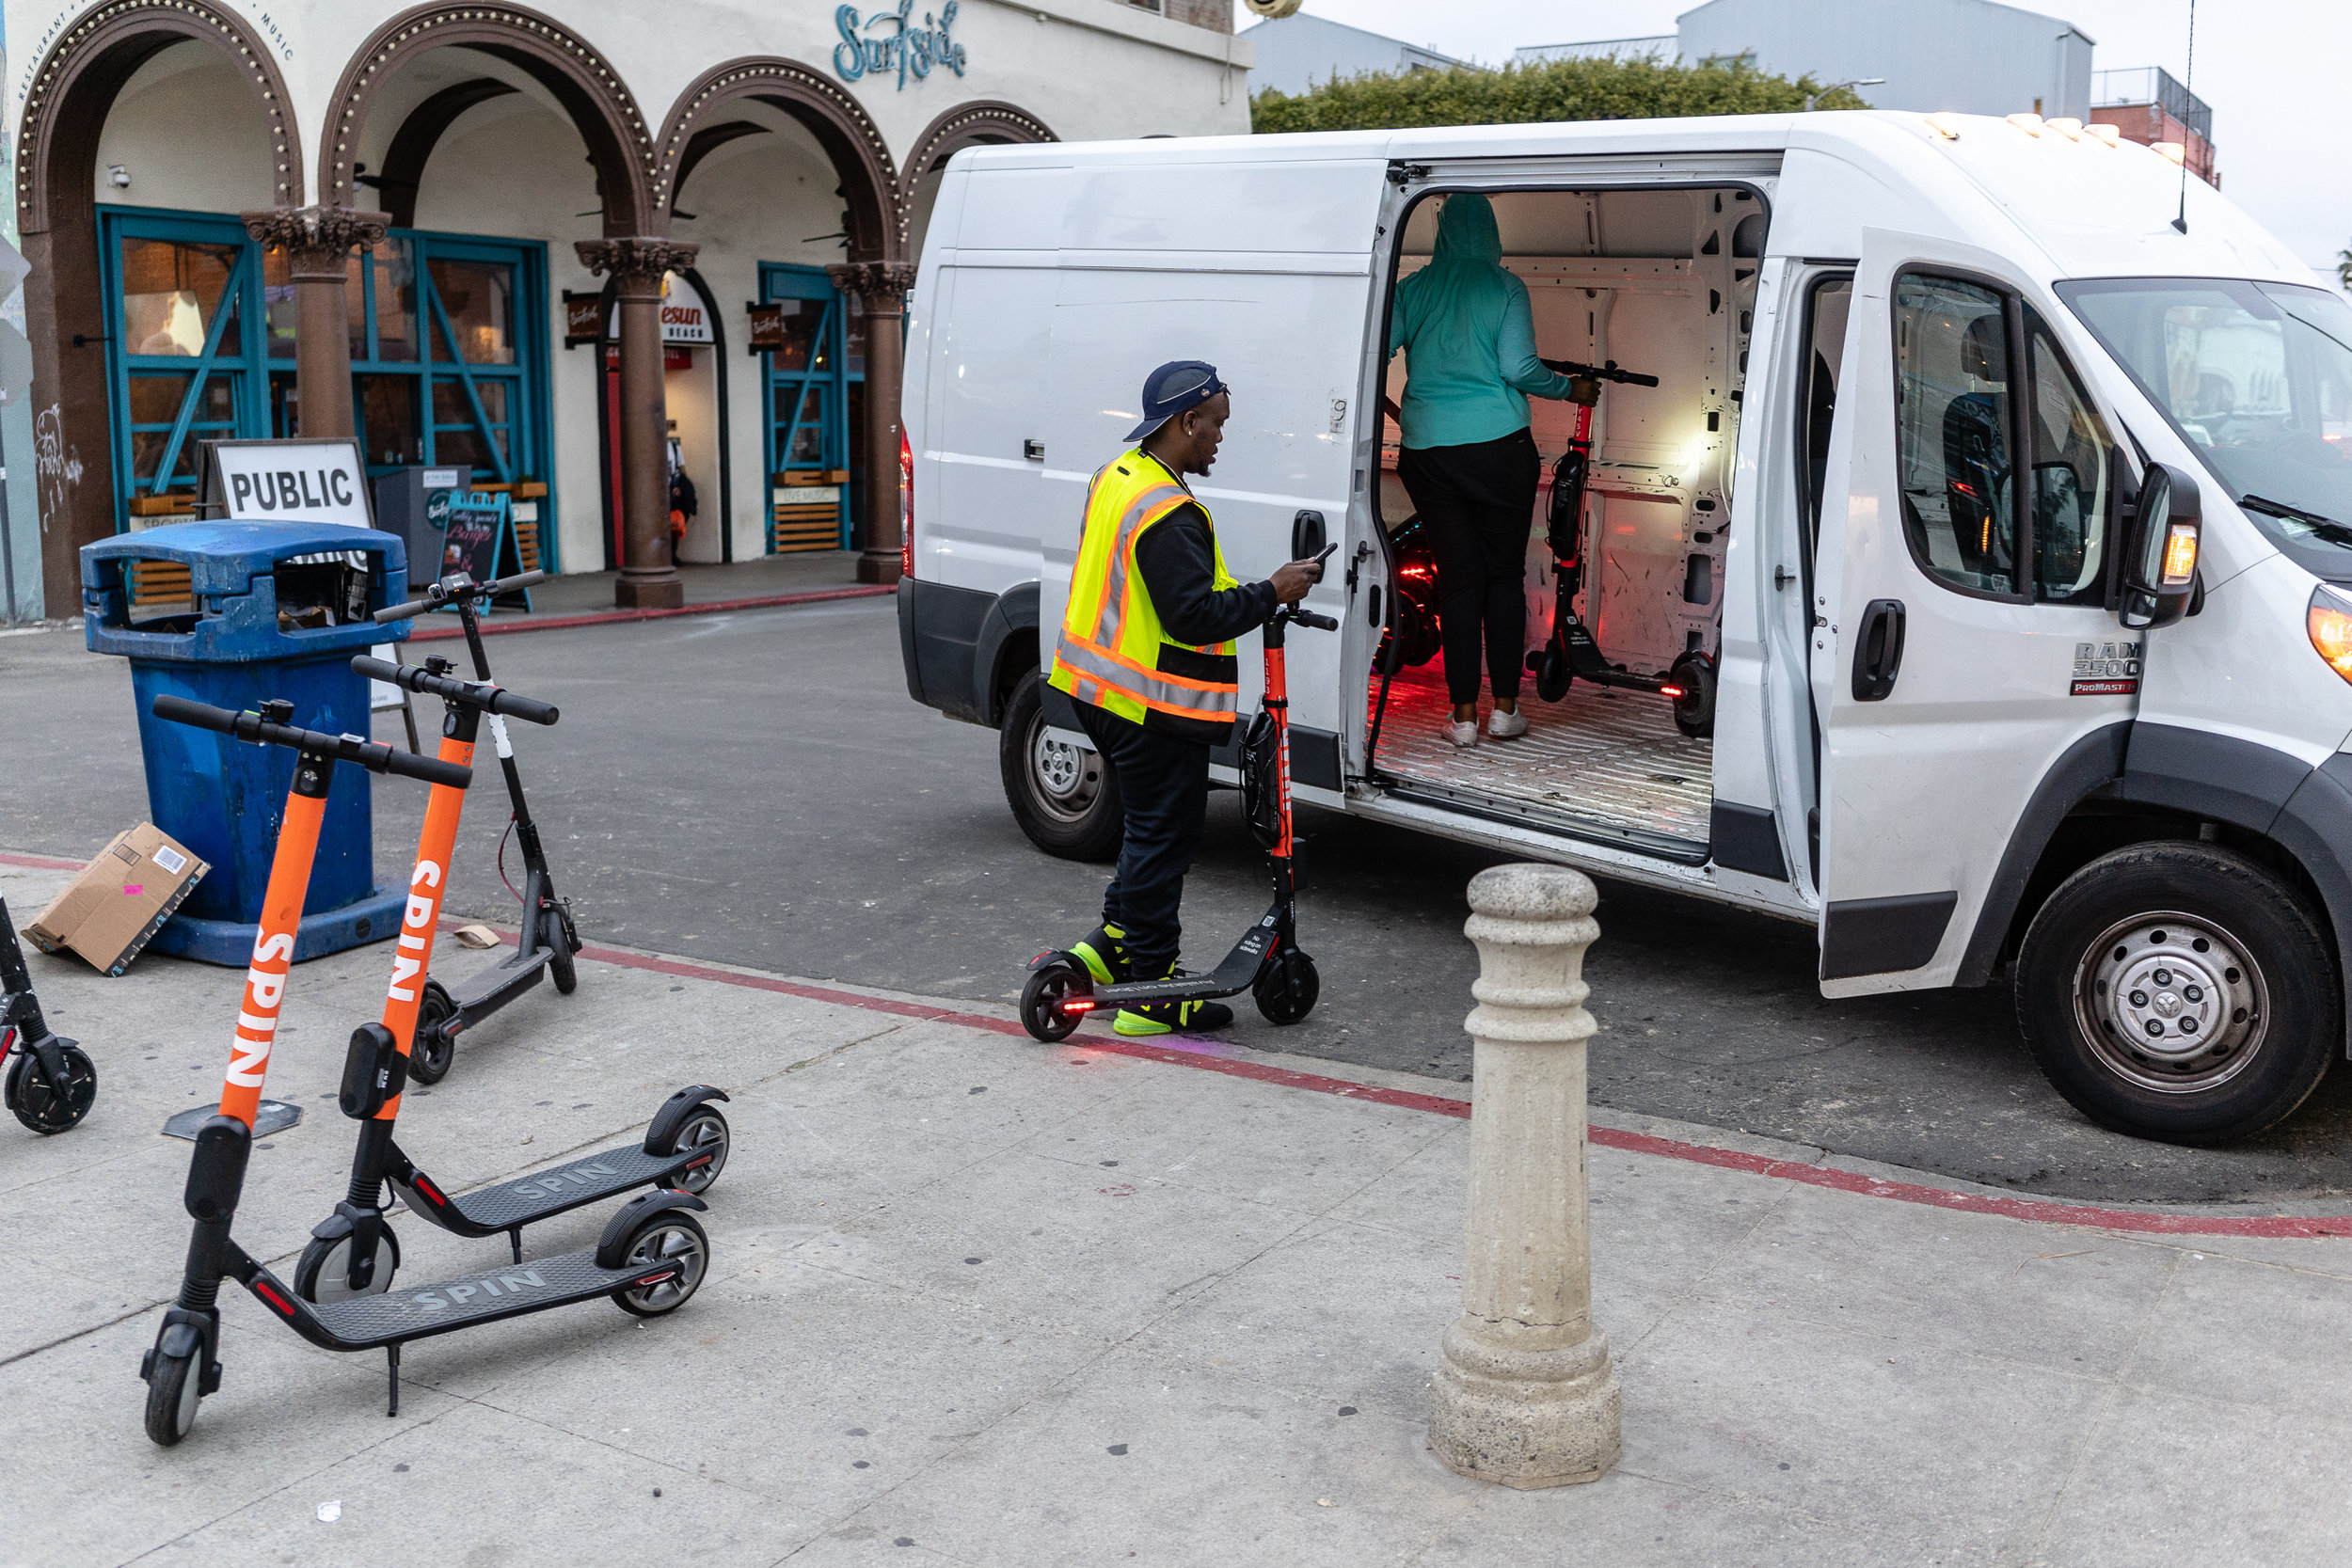 Scooter Keepers / Uber 1